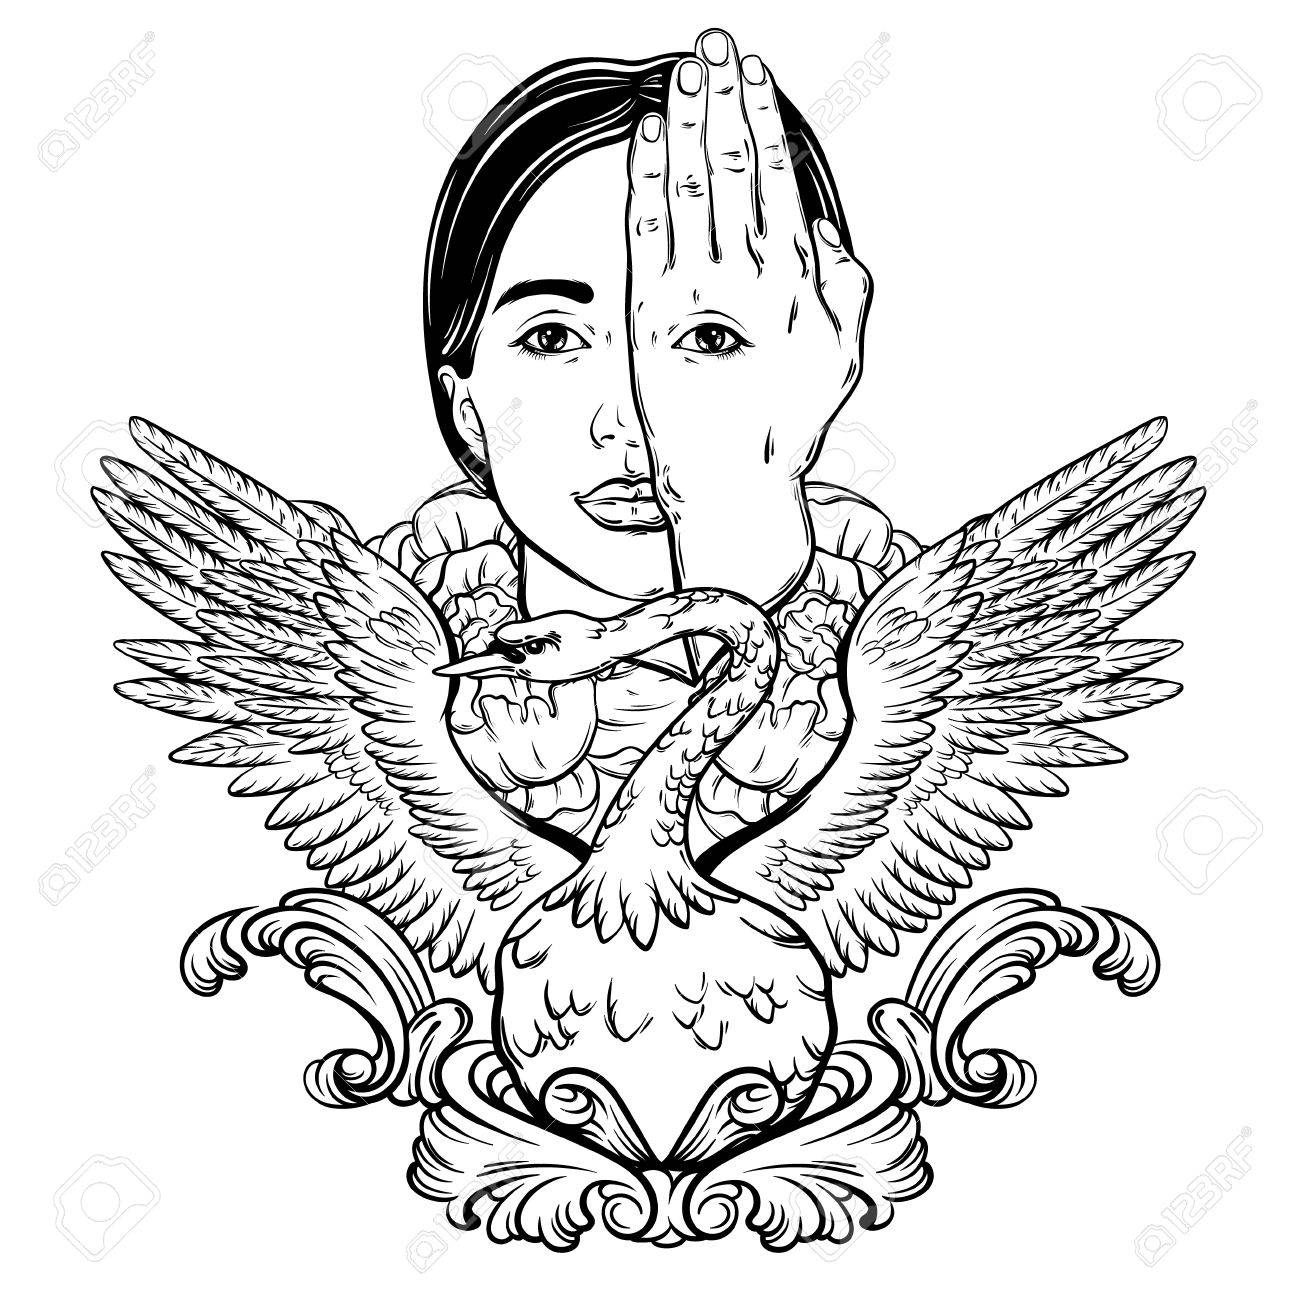 1300x1300 Vector Hand Drawn Illustration Of Woman Face With Eye On Her Hand